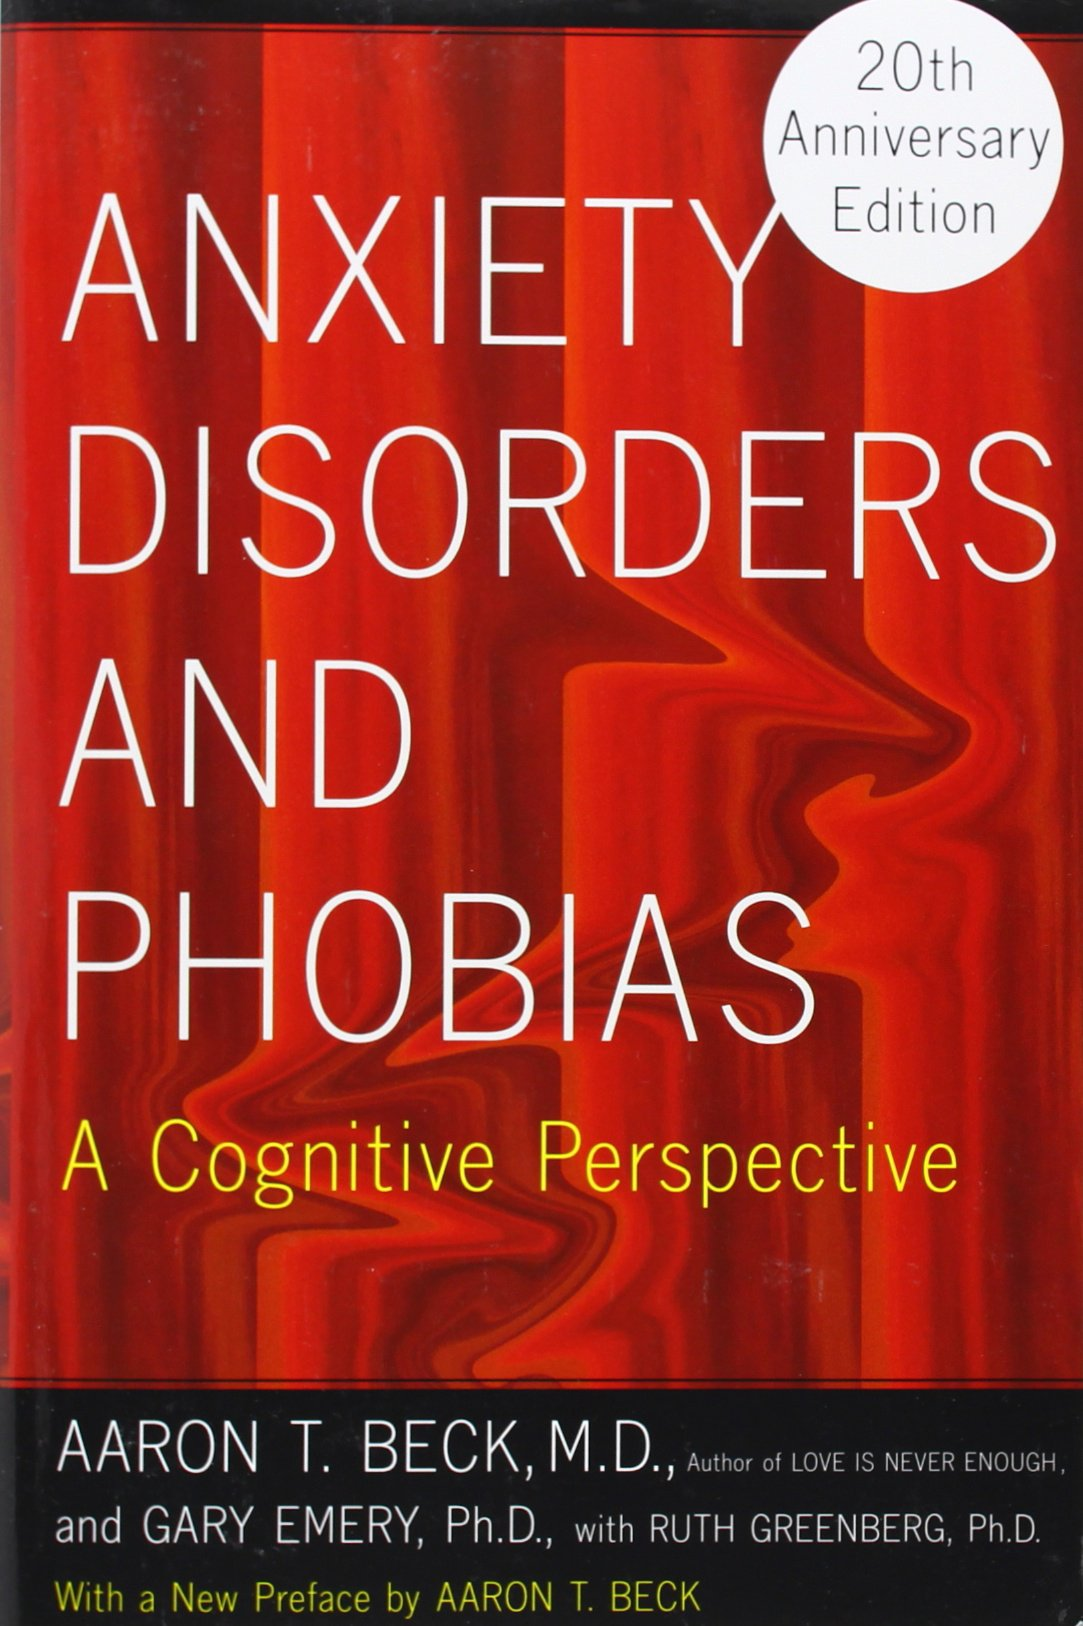 Anxiety Disorders Phobias Cognitive Perspective product image